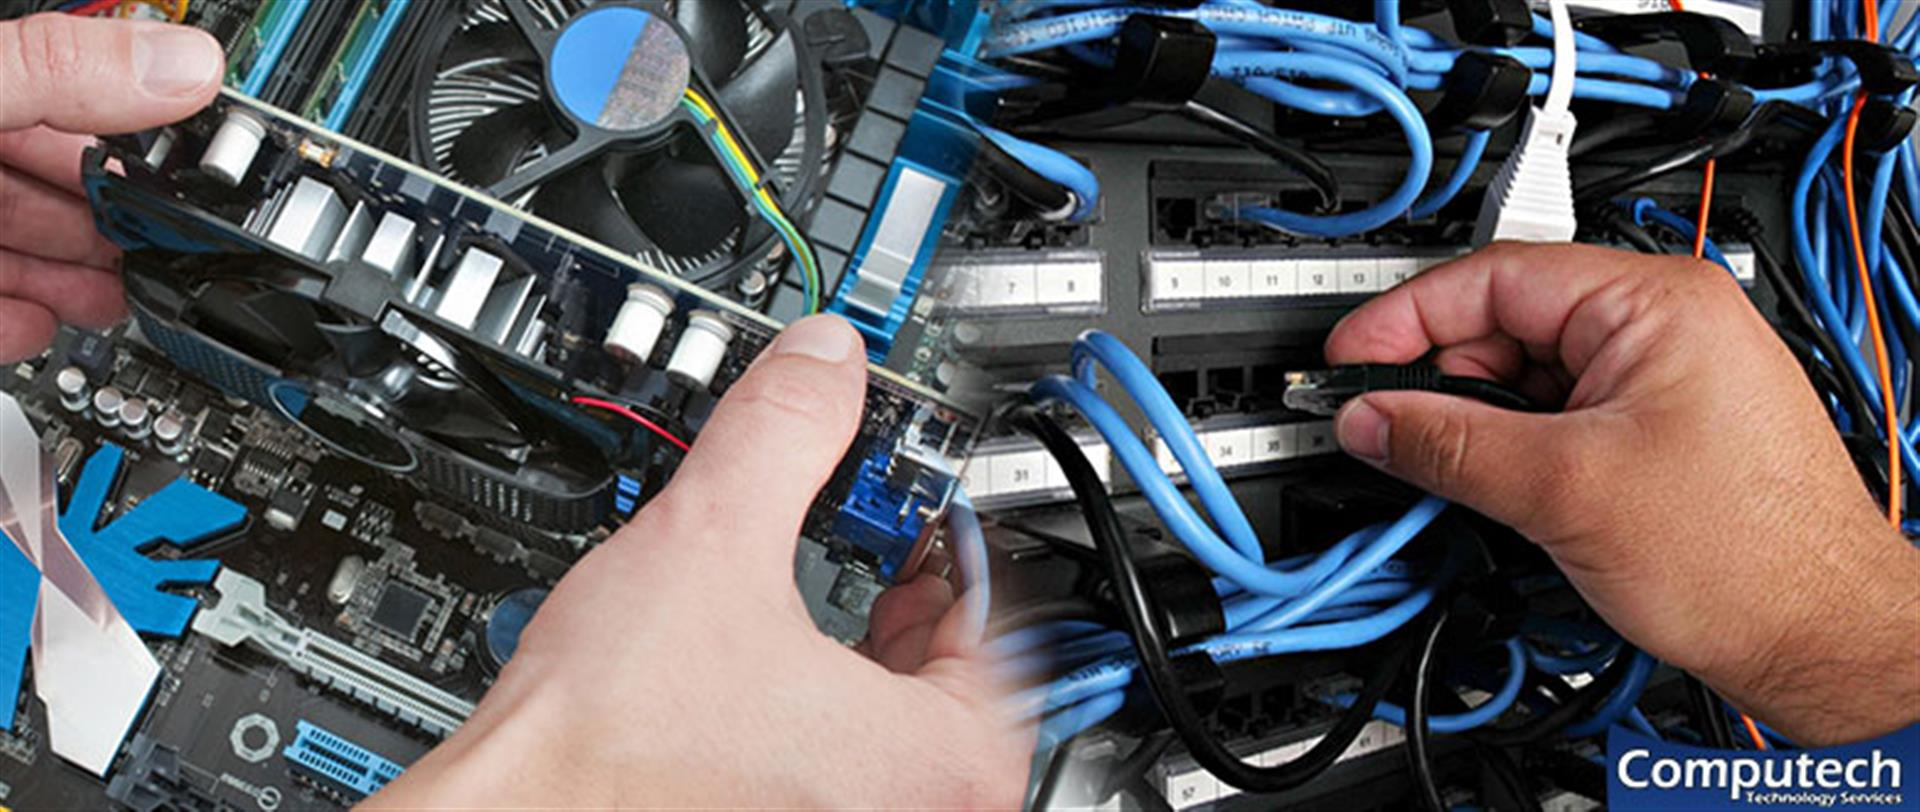 Danville Virginia On Site PC & Printer Repairs, Networking, Voice & Data Cabling Solutions